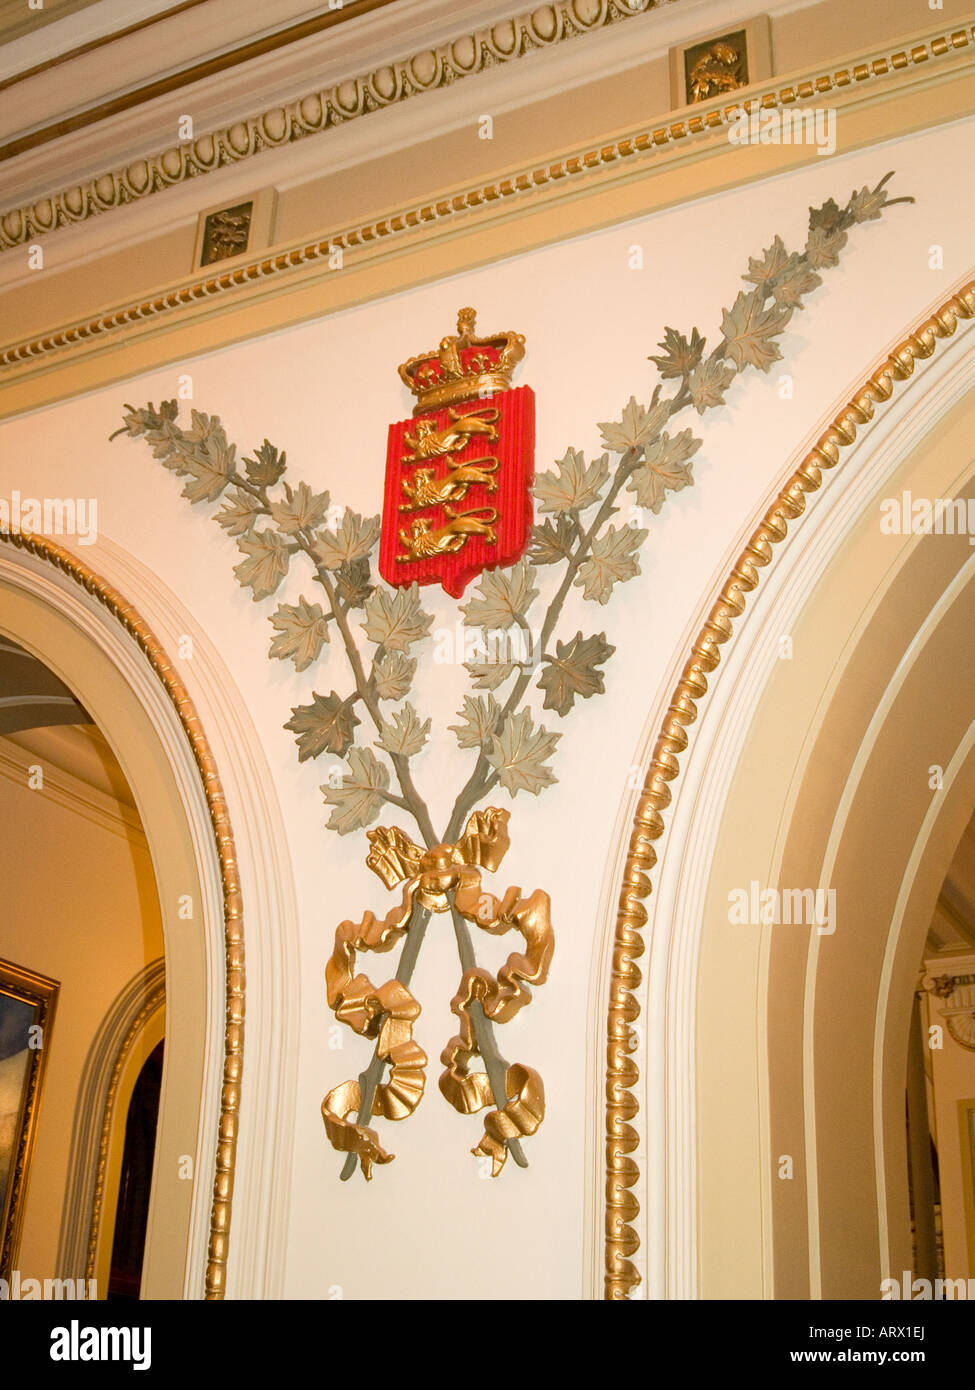 Perfect The English Coat Of Arms On The Wall Inside The Assemblee Nationale On  Grande Allee In Quebec City, Canada